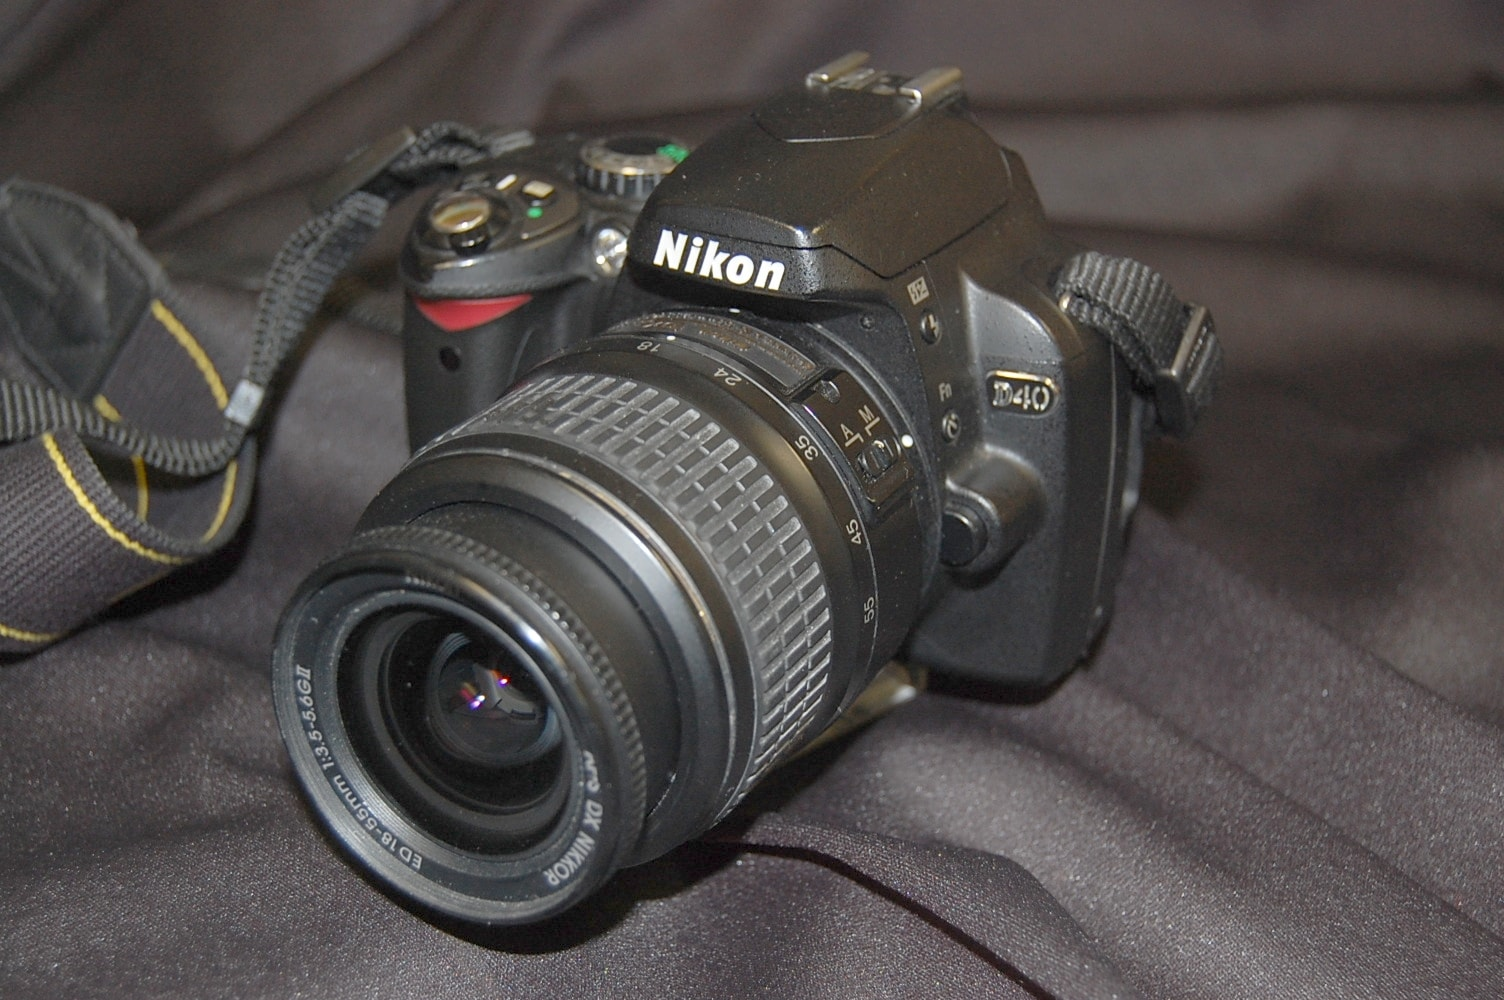 Nikon D40 Software Downloads